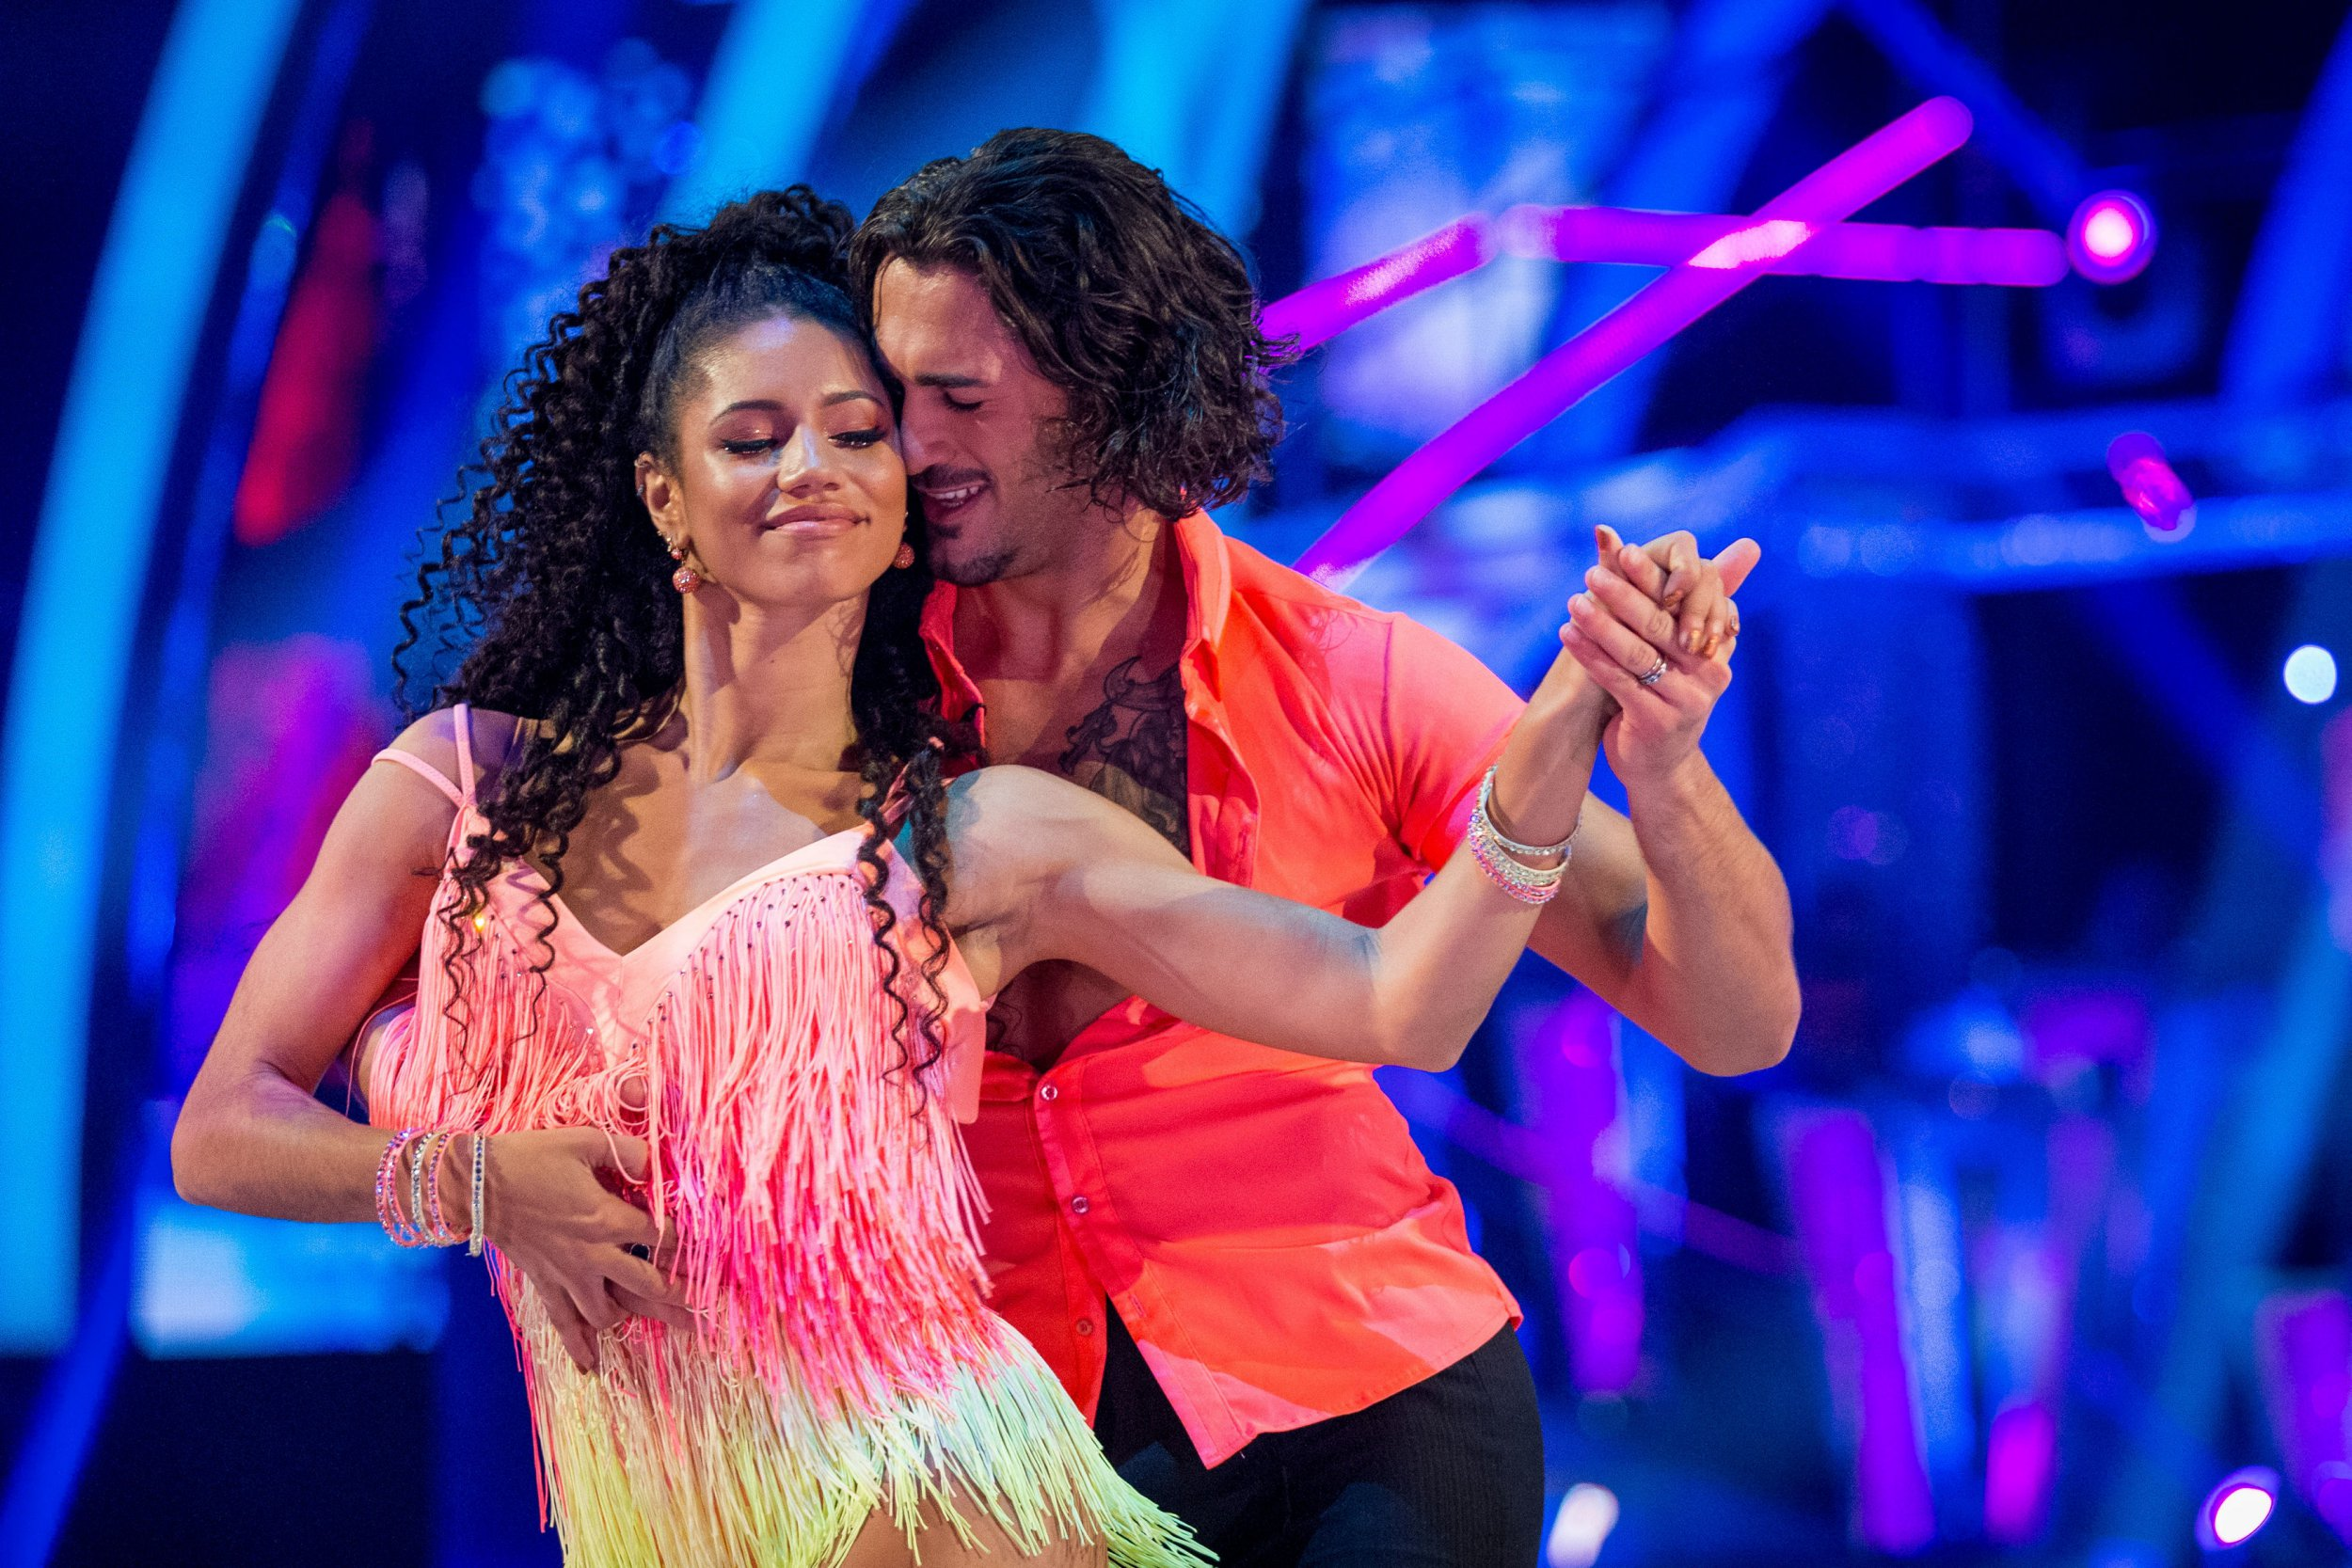 EMBARGOED TO 2035 SATURDAY OCTOBER 20 For use in UK, Ireland or Benelux countries only BBC handout photo of Vick Hope and her dance partner Graziano Di Prima during the dress rehearsal for Saturday's live show for the BBC1 dance programme, Strictly Come Dancing. PRESS ASSOCIATION Photo. Picture date: Saturday October 20, 2018. See PA story SHOWBIZ Strictly. Photo credit should read: Guy Levy/BBC/PA Wire NOTE TO EDITORS: Not for use more than 21 days after issue. You may use this picture without charge only for the purpose of publicising or reporting on current BBC programming, personnel or other BBC output or activity within 21 days of issue. Any use after that time MUST be cleared through BBC Picture Publicity. Please credit the image to the BBC and any named photographer or independent programme maker, as described in the caption.